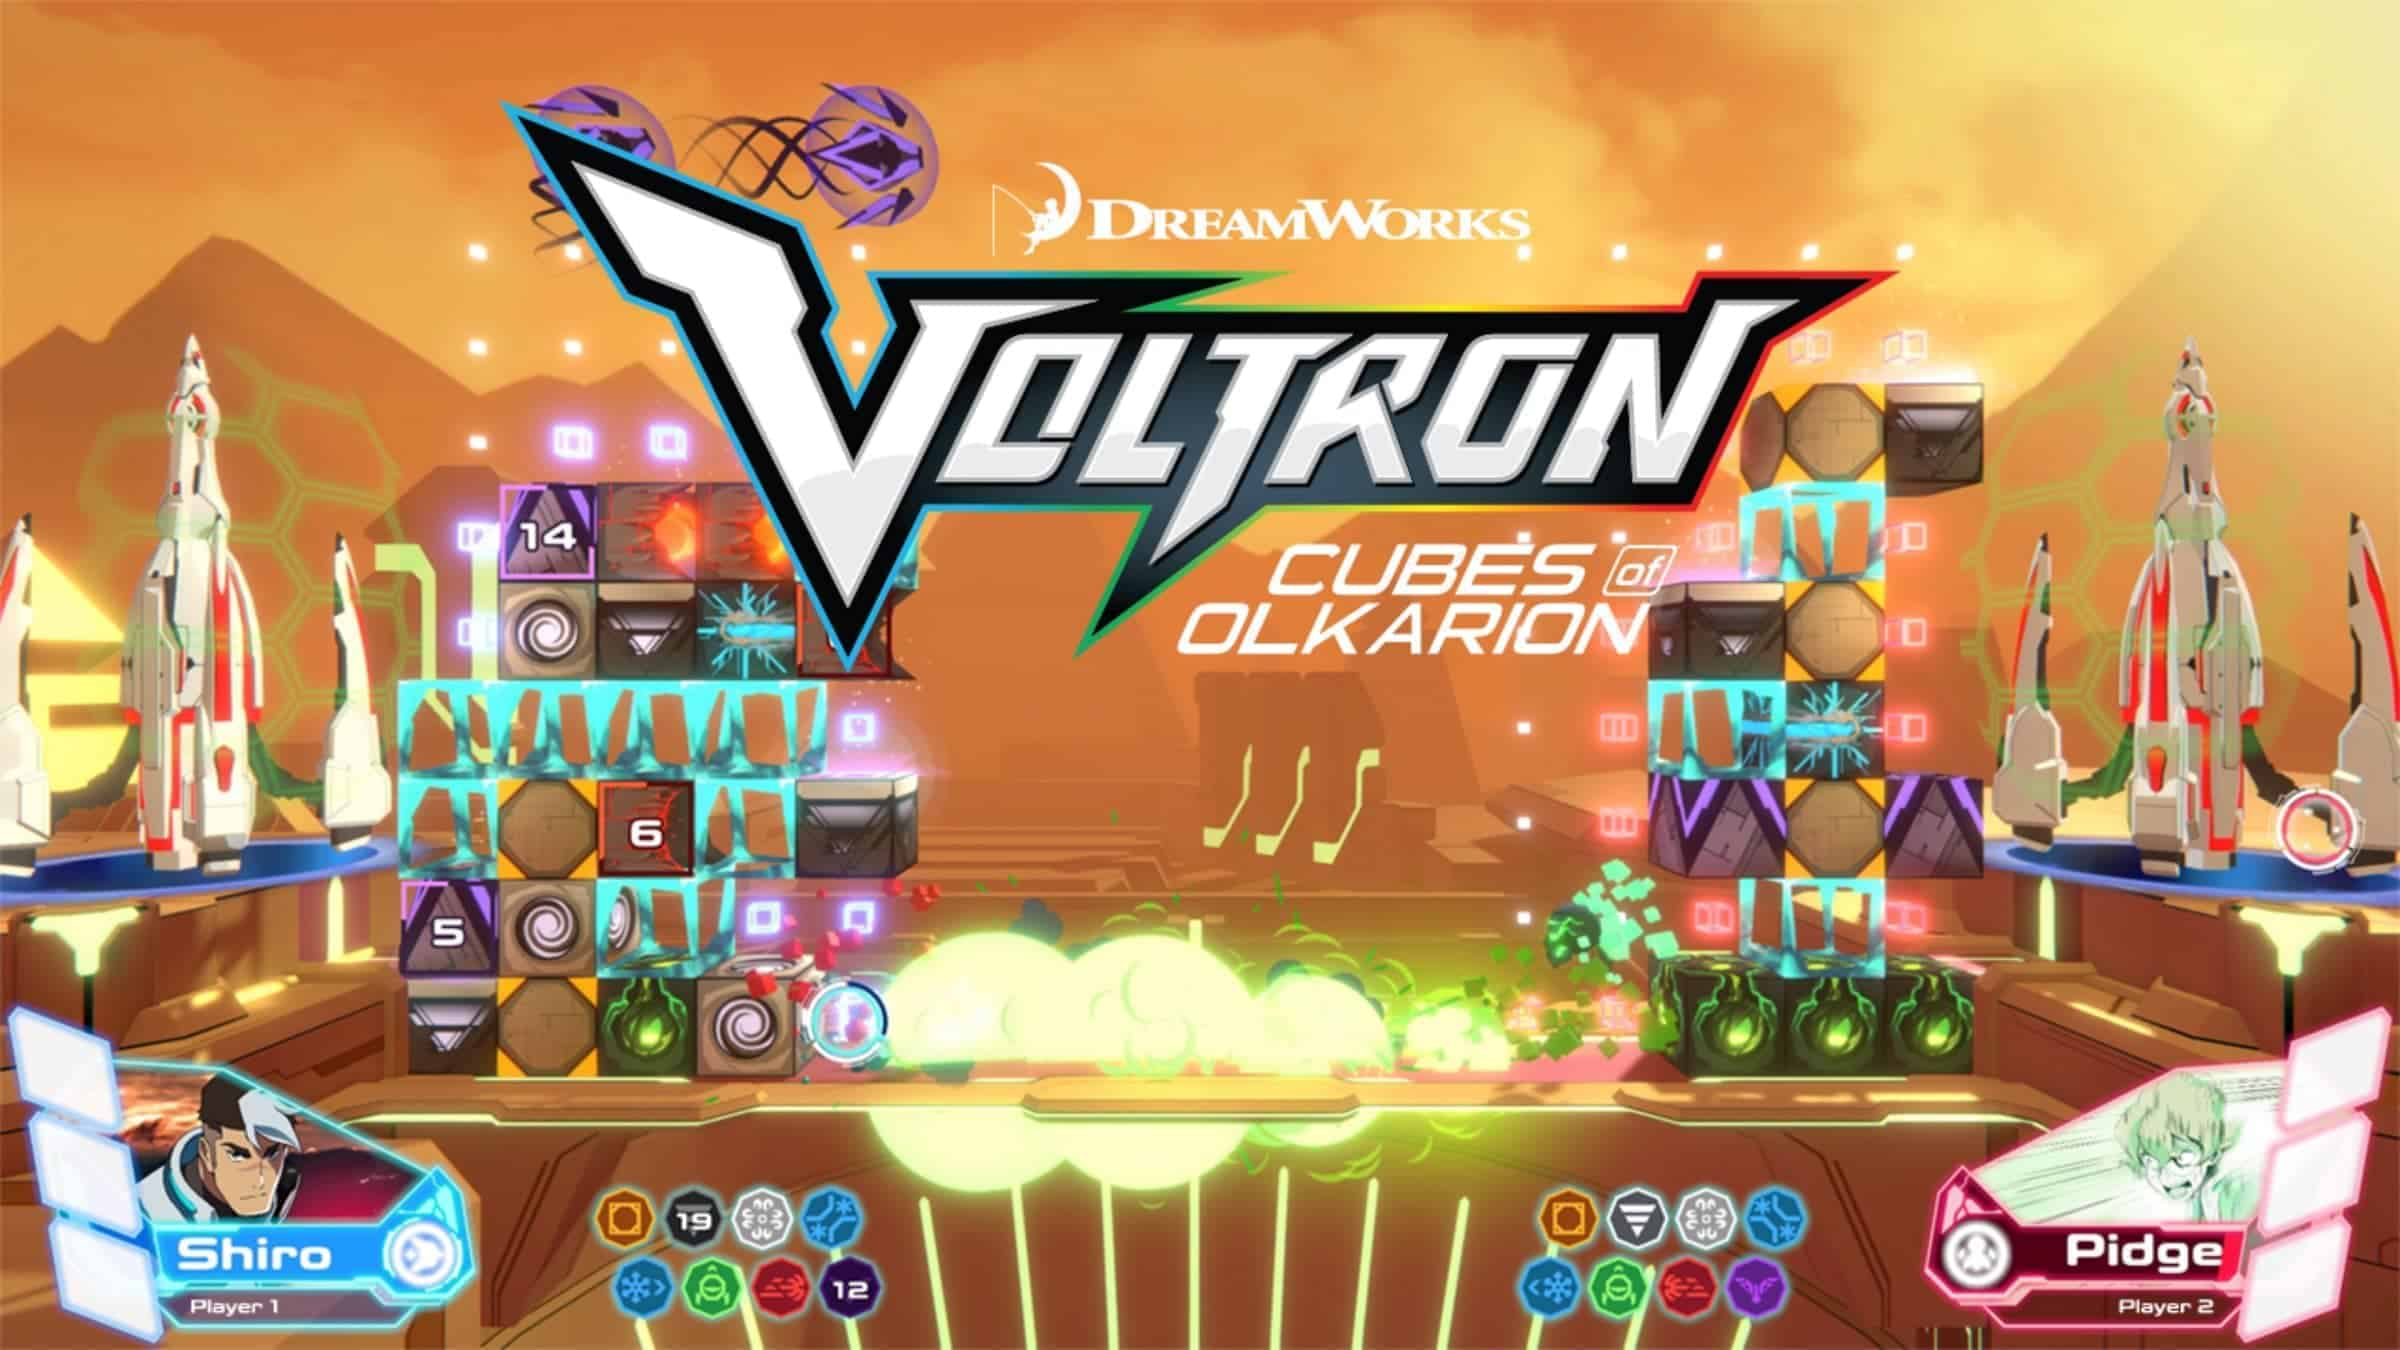 Voltron-Cubes-of-Olkarion-Header-Main-Logo-Techgarage